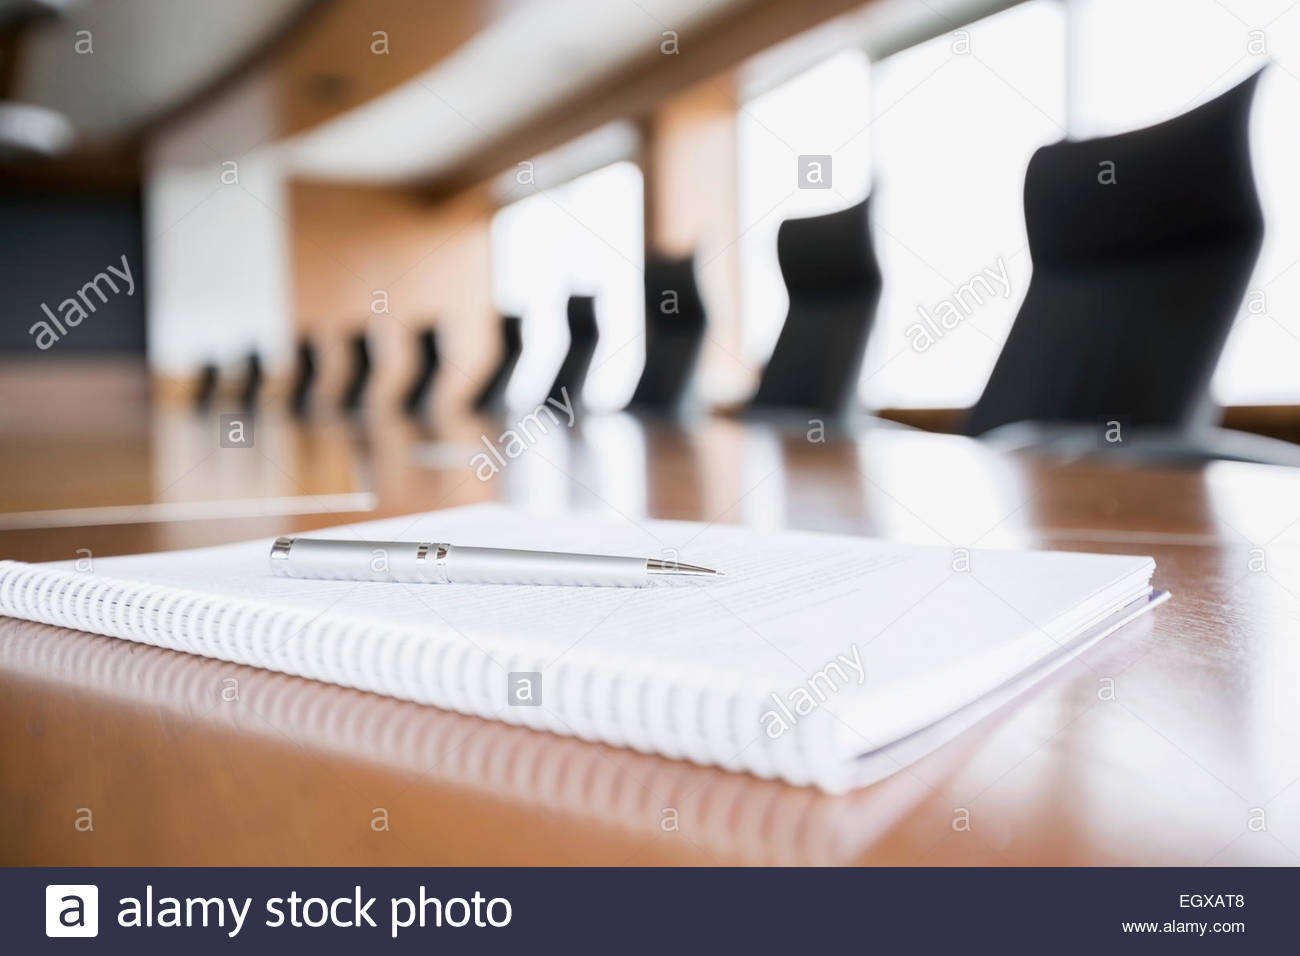 Notepad and pen on empty conference room table - Stock Image